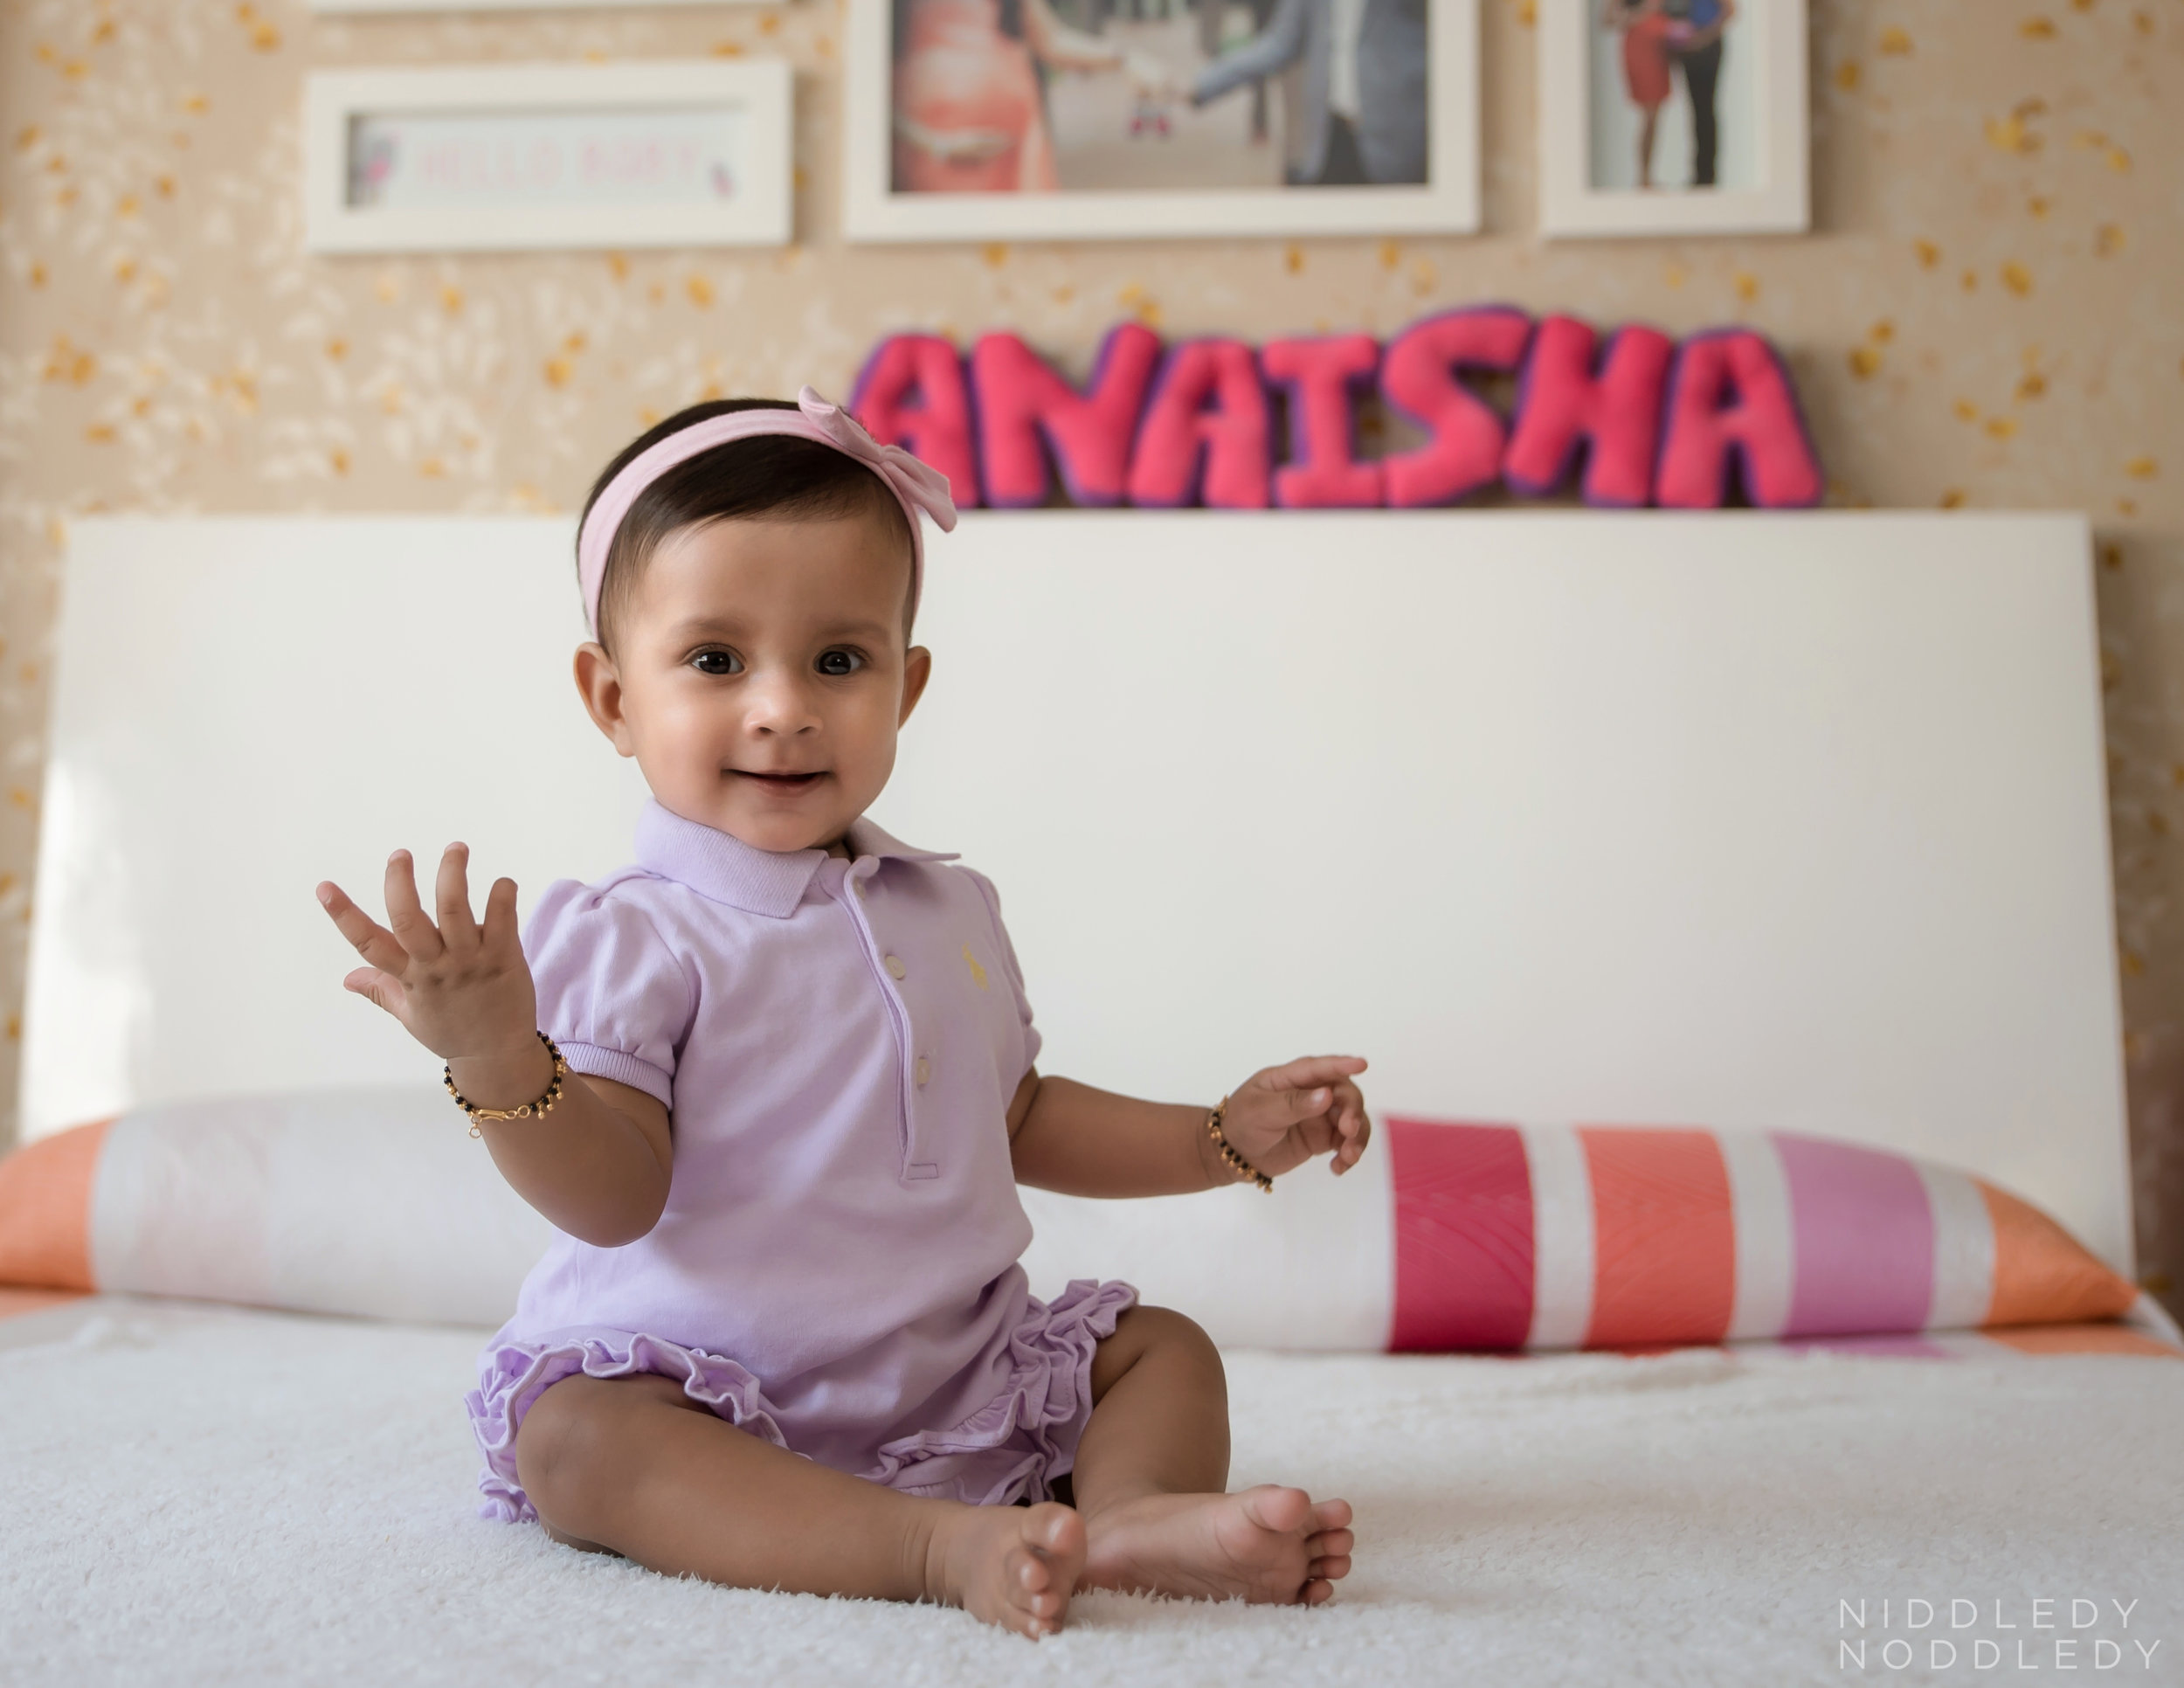 Anaisha Baby Photoshoot ❤ NiddledyNoddledy.com ~ Bumps to Babies Photography, Kolkata - 74.jpg